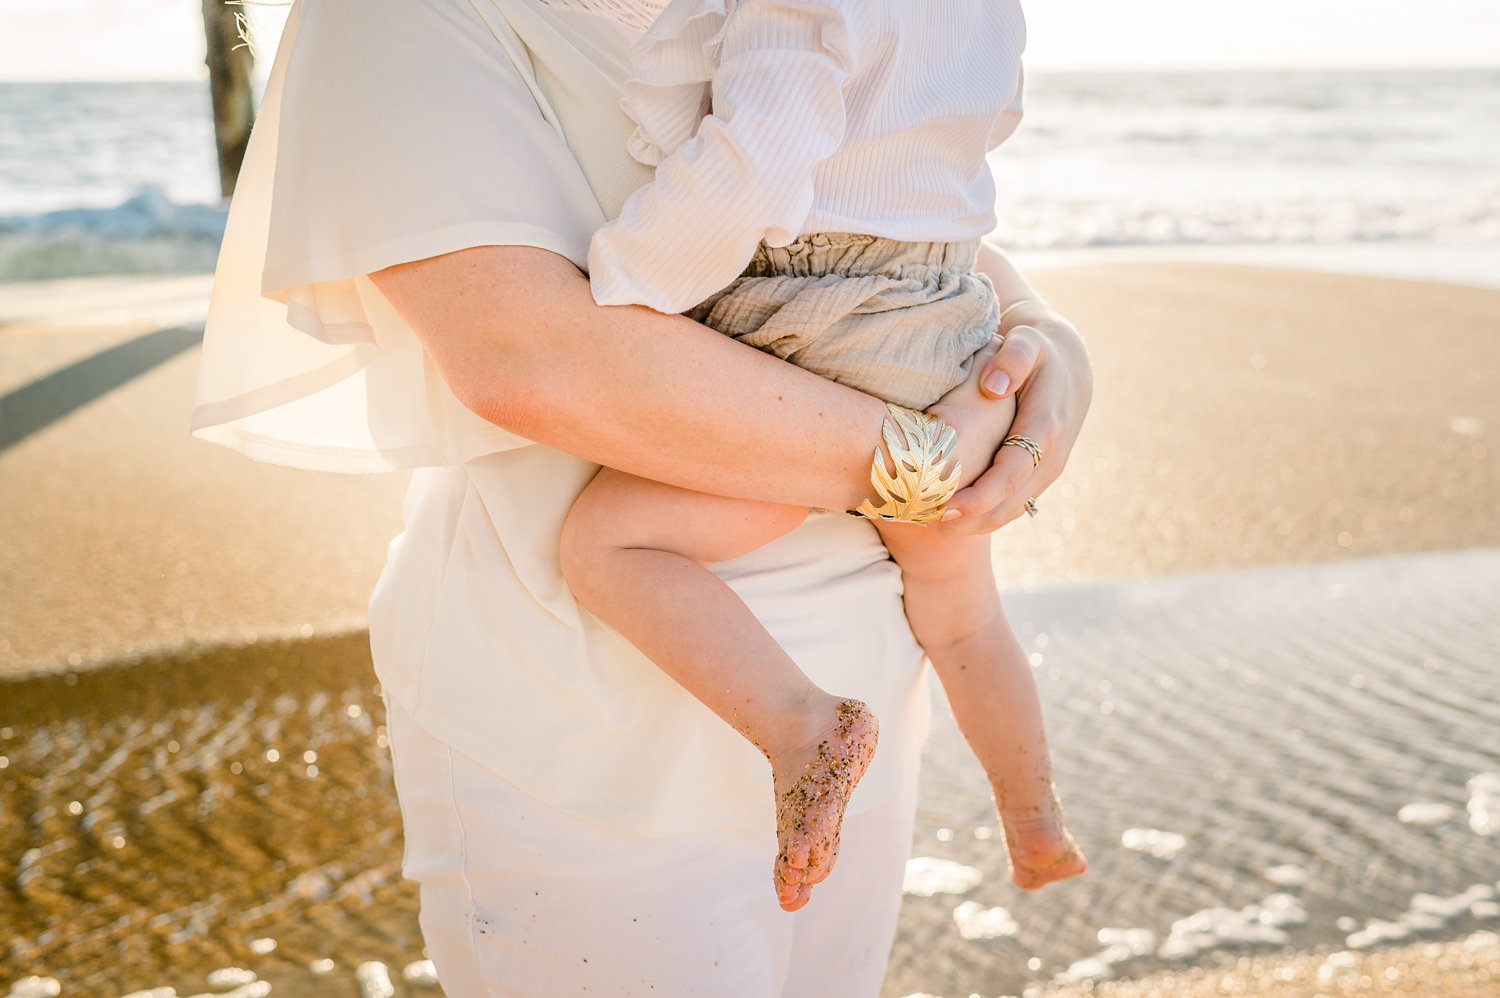 mother holding infant child, full frame image, Saint Augustine Beach, Rya Duncklee